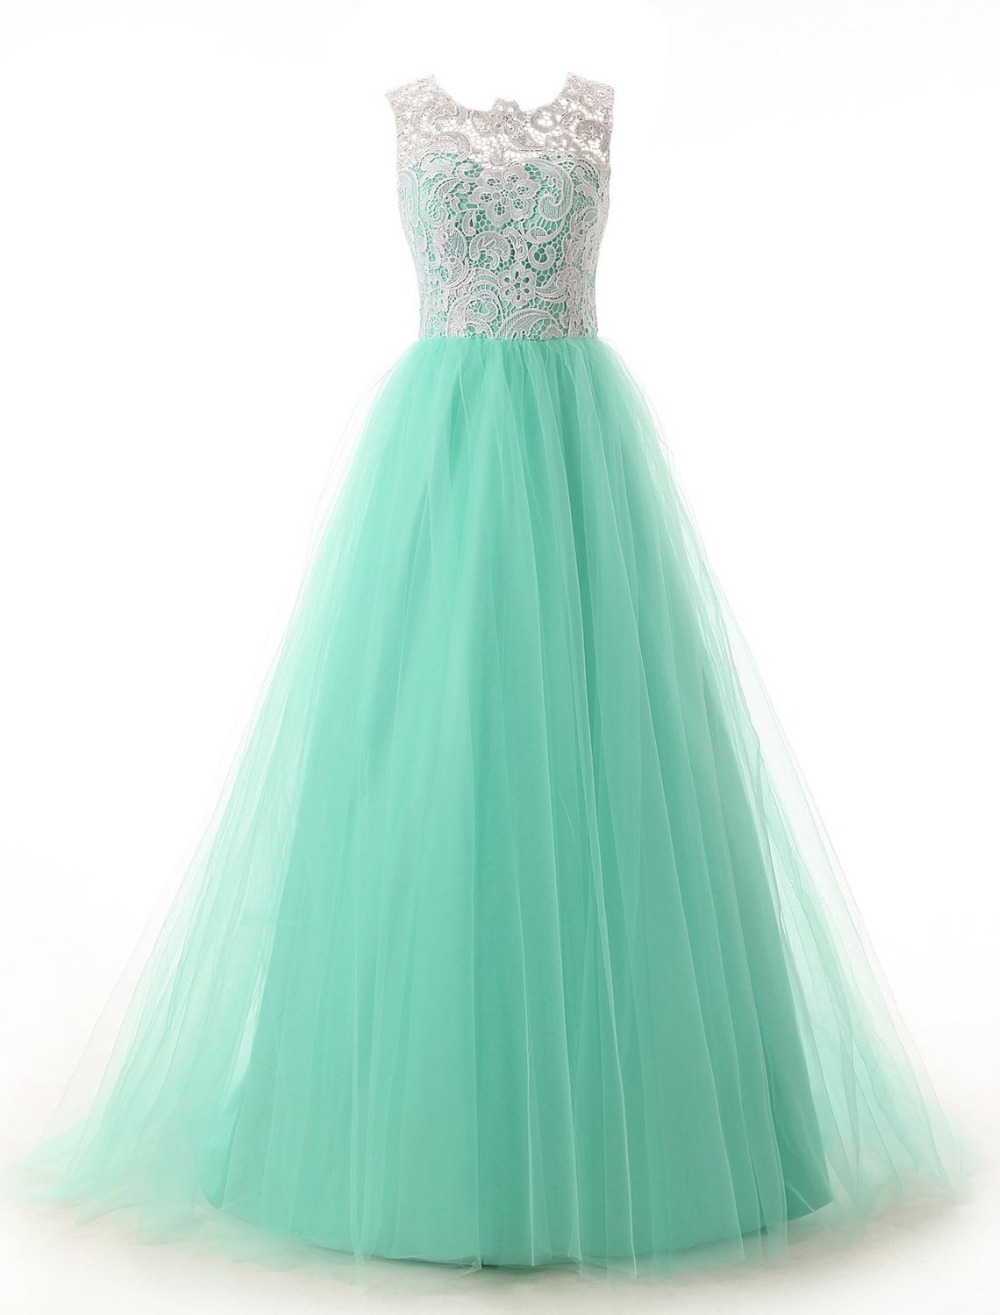 Newest Elegant A line Ivory Lace Turquoise Tulle Prom Dress Long 2015 Hot Sale Lace Formal Evening Dresses